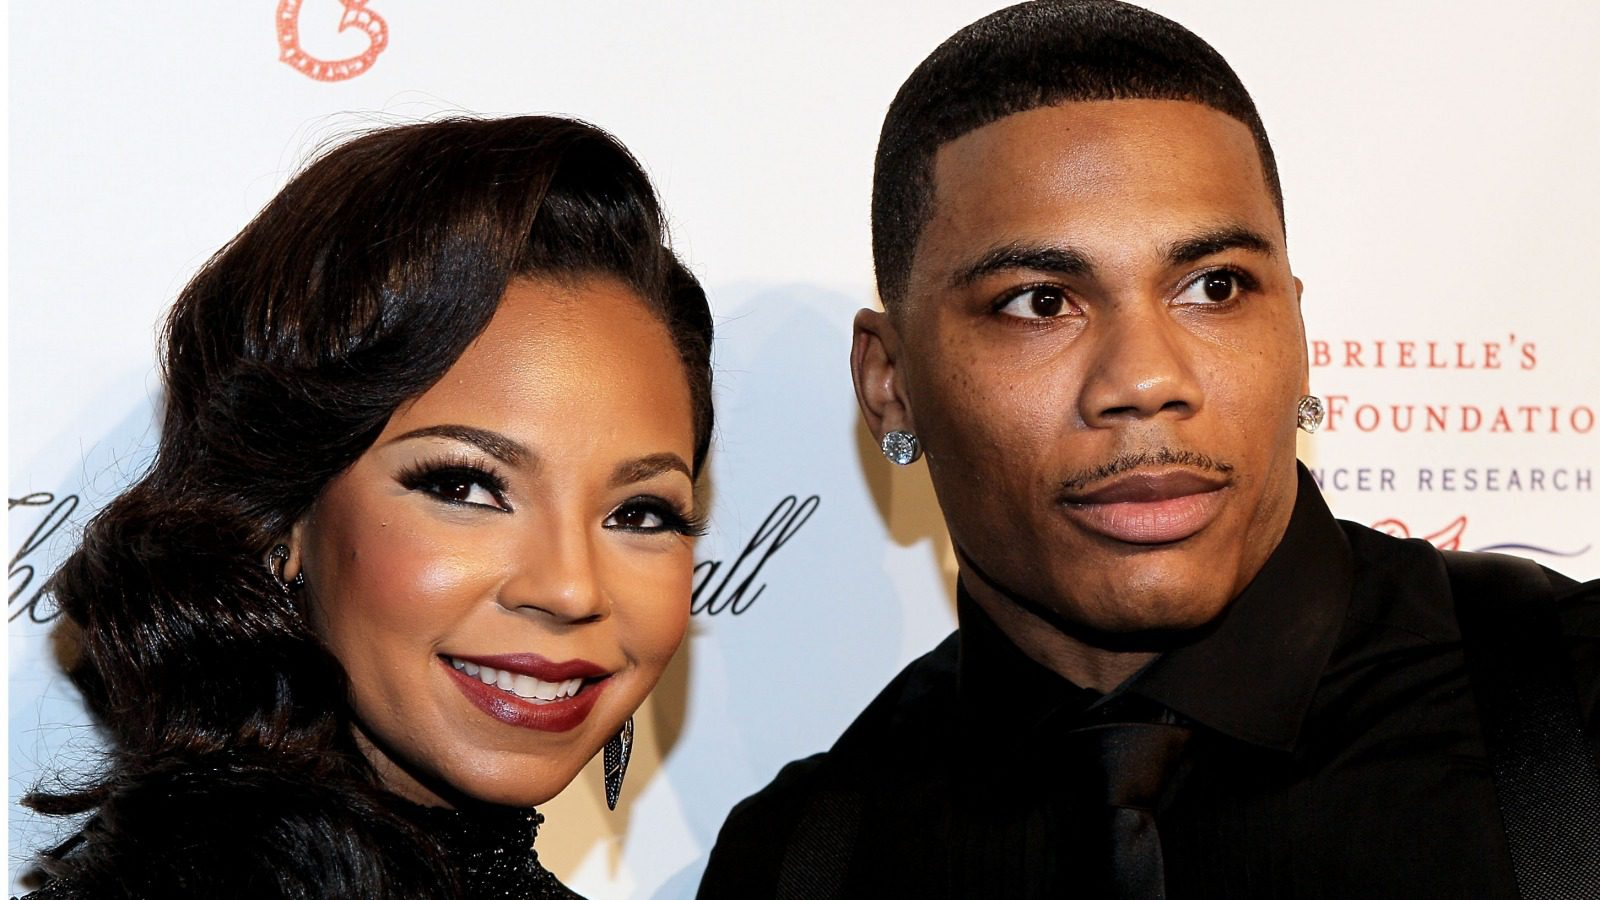 Who Is Nelly Dating 2021